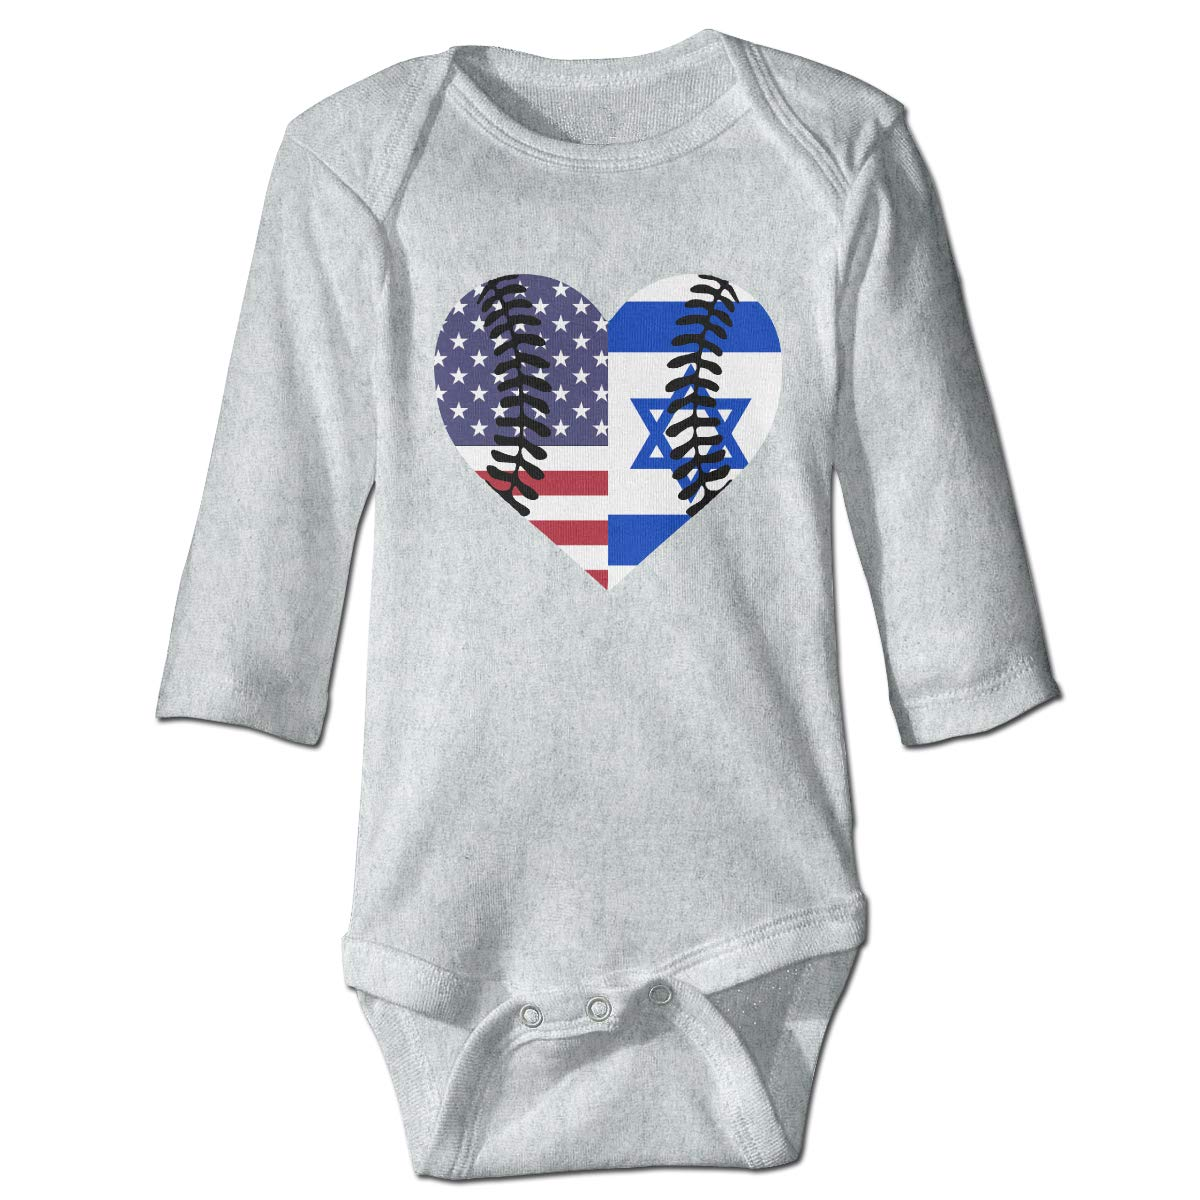 A14UBP Infant Baby Boys Girls Long Sleeve Climb Romper Israel USA Flag Half Baseball Unisex Button Playsuit Outfit Clothes